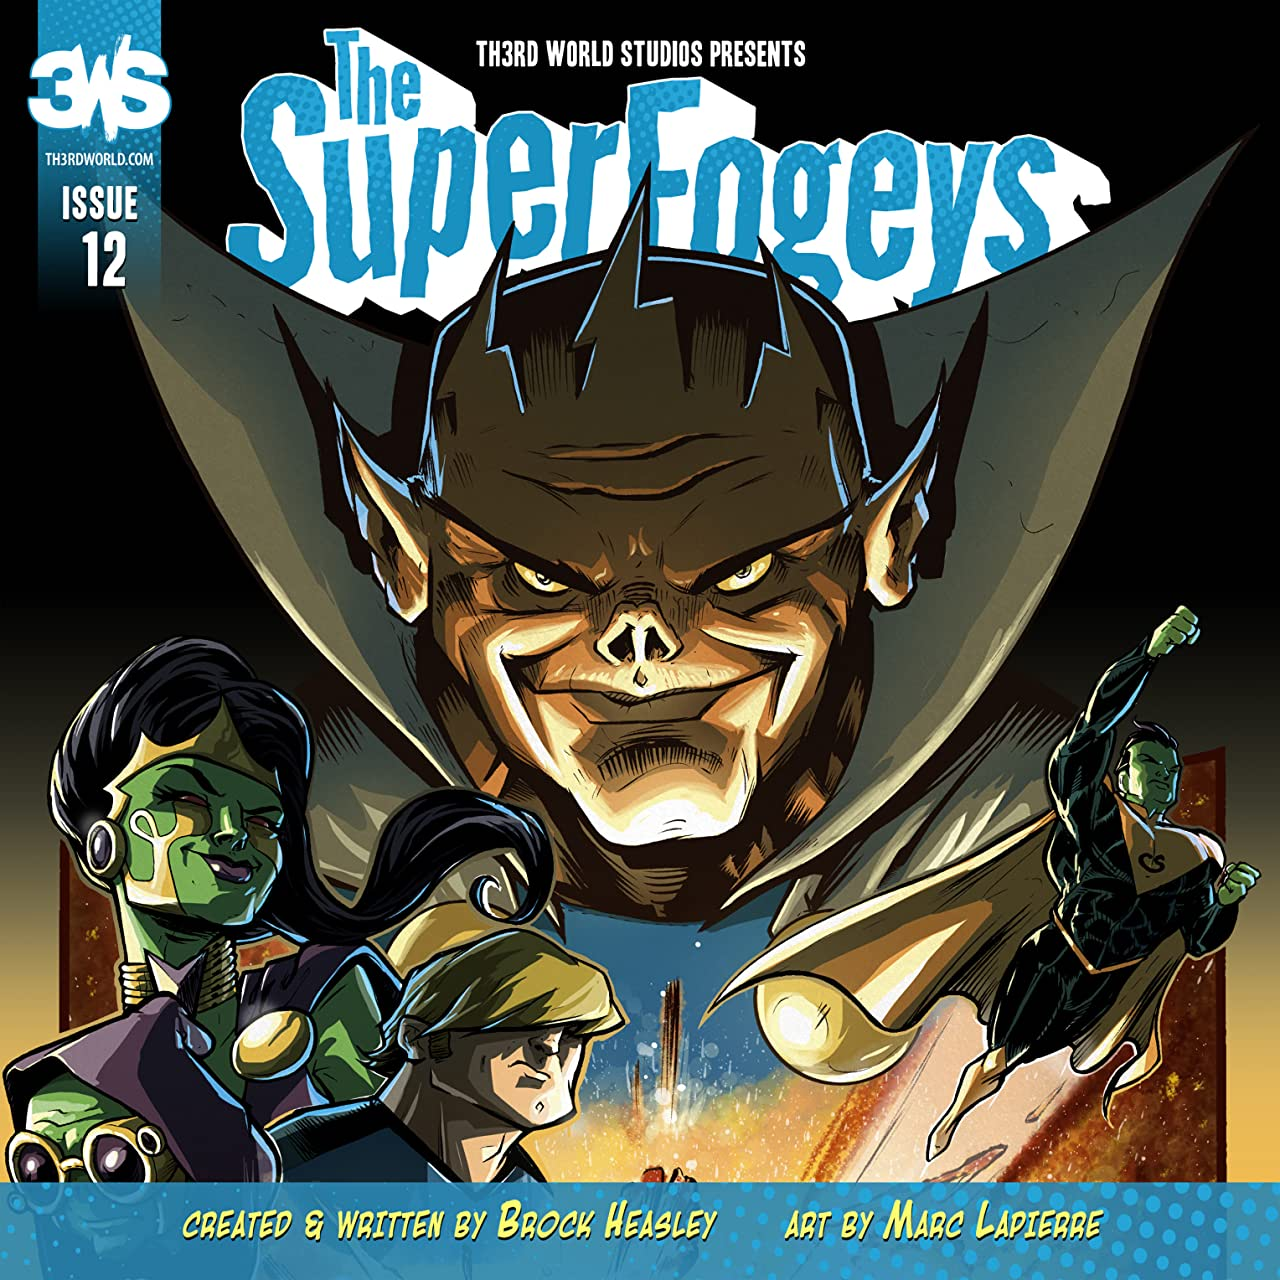 The SuperFogeys #12